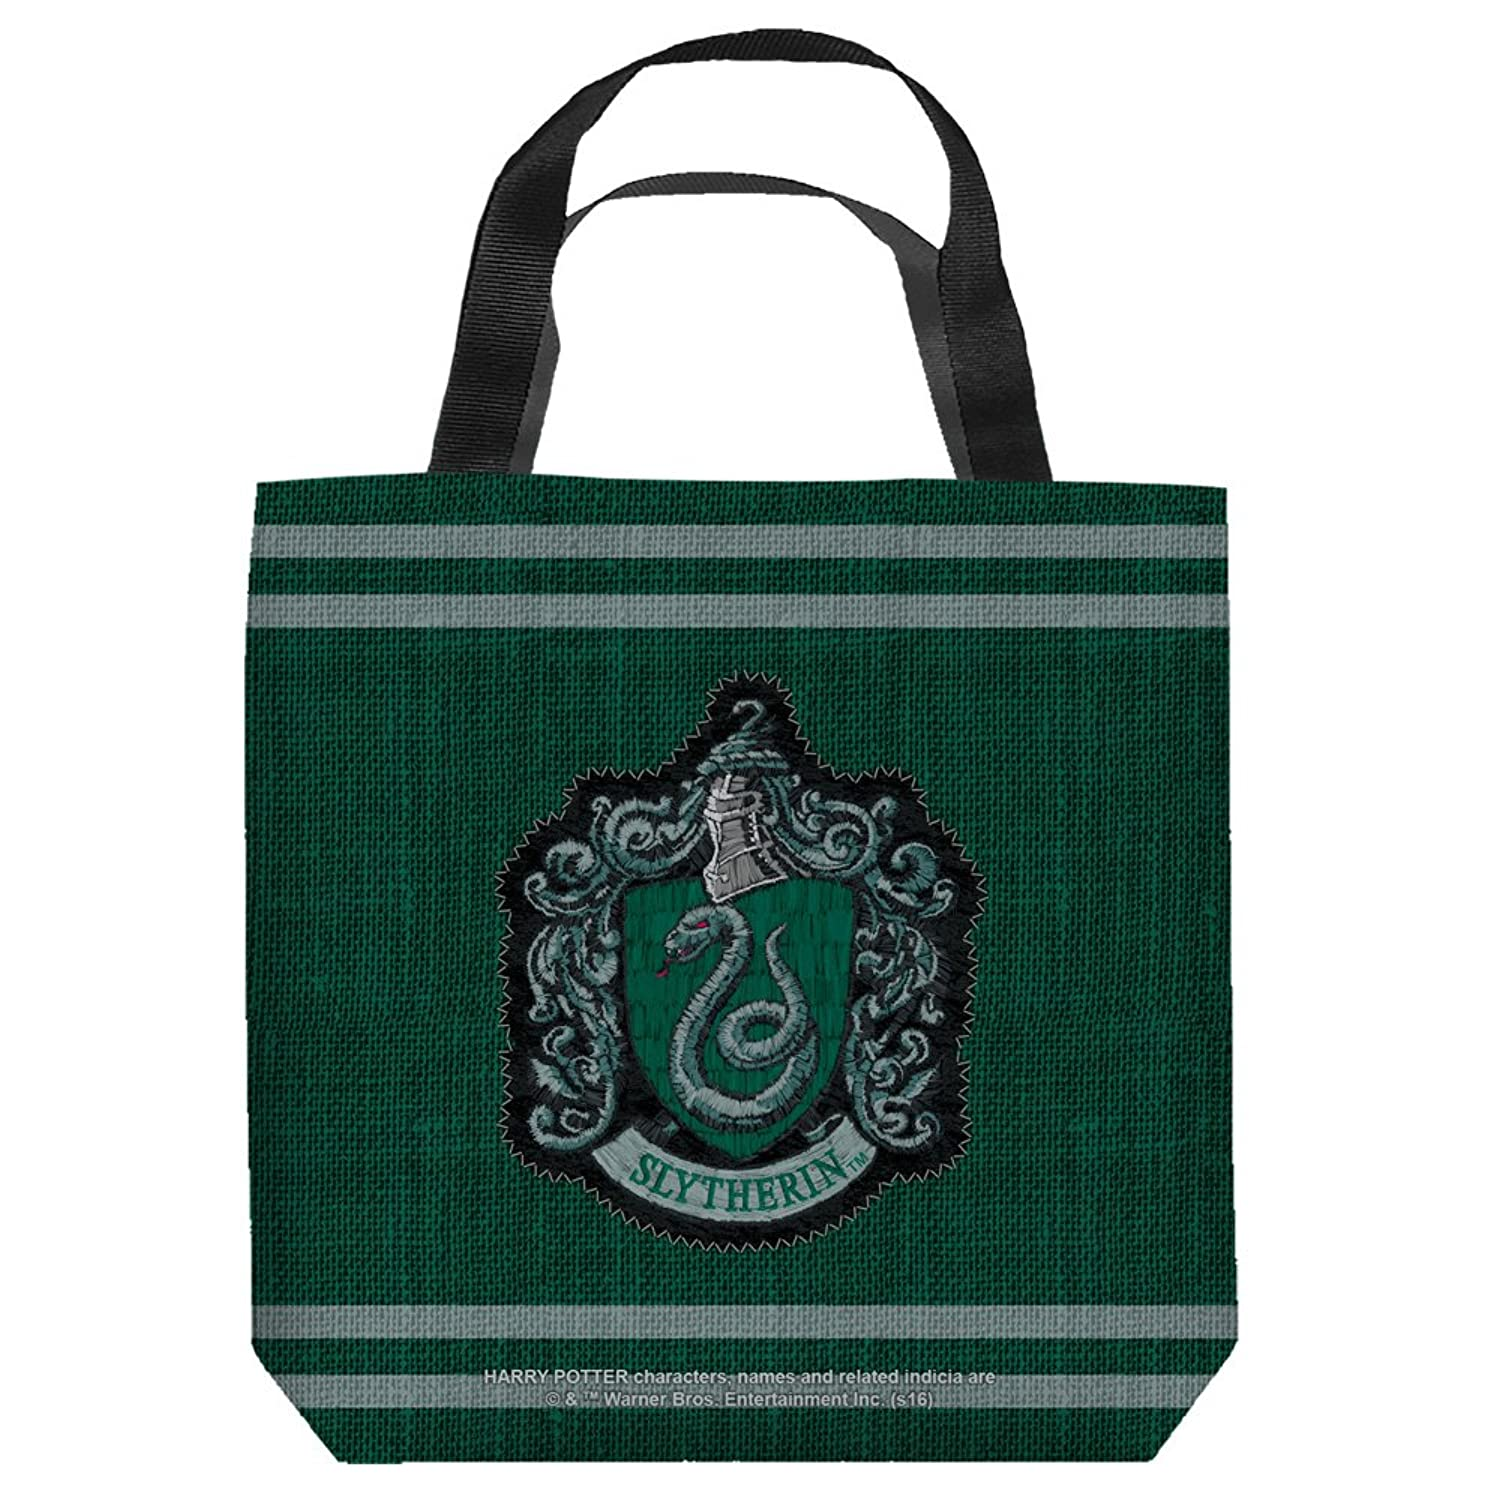 Harry Potter Slytherin Stitch Crest Tote Bag